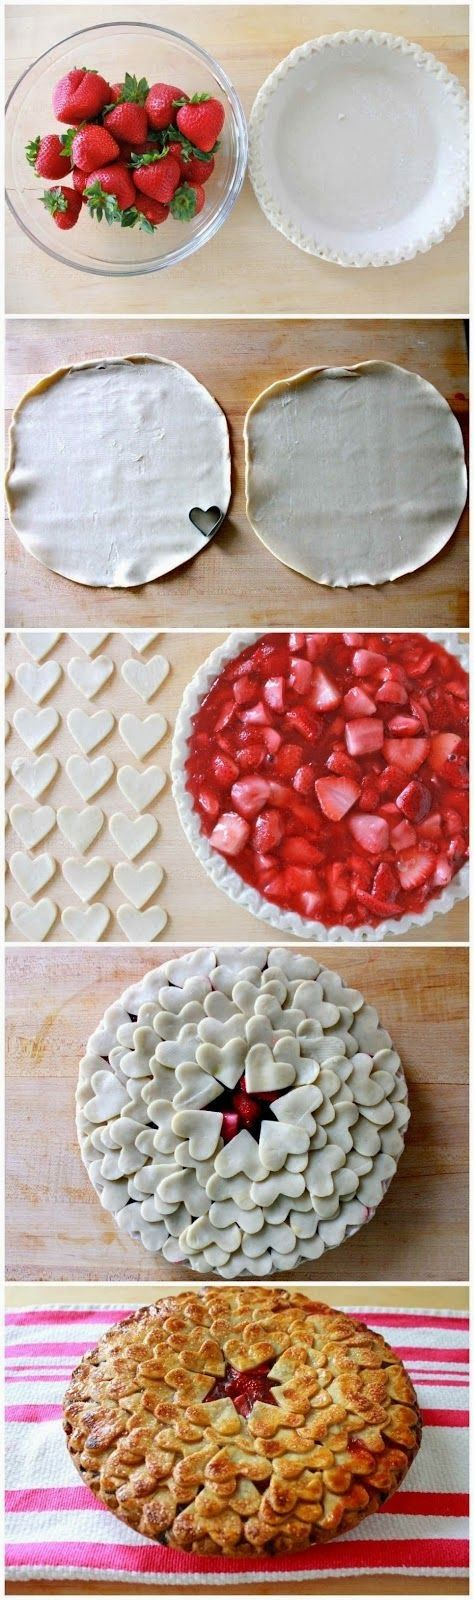 Shabby in love: Simple Heart Shaped foods